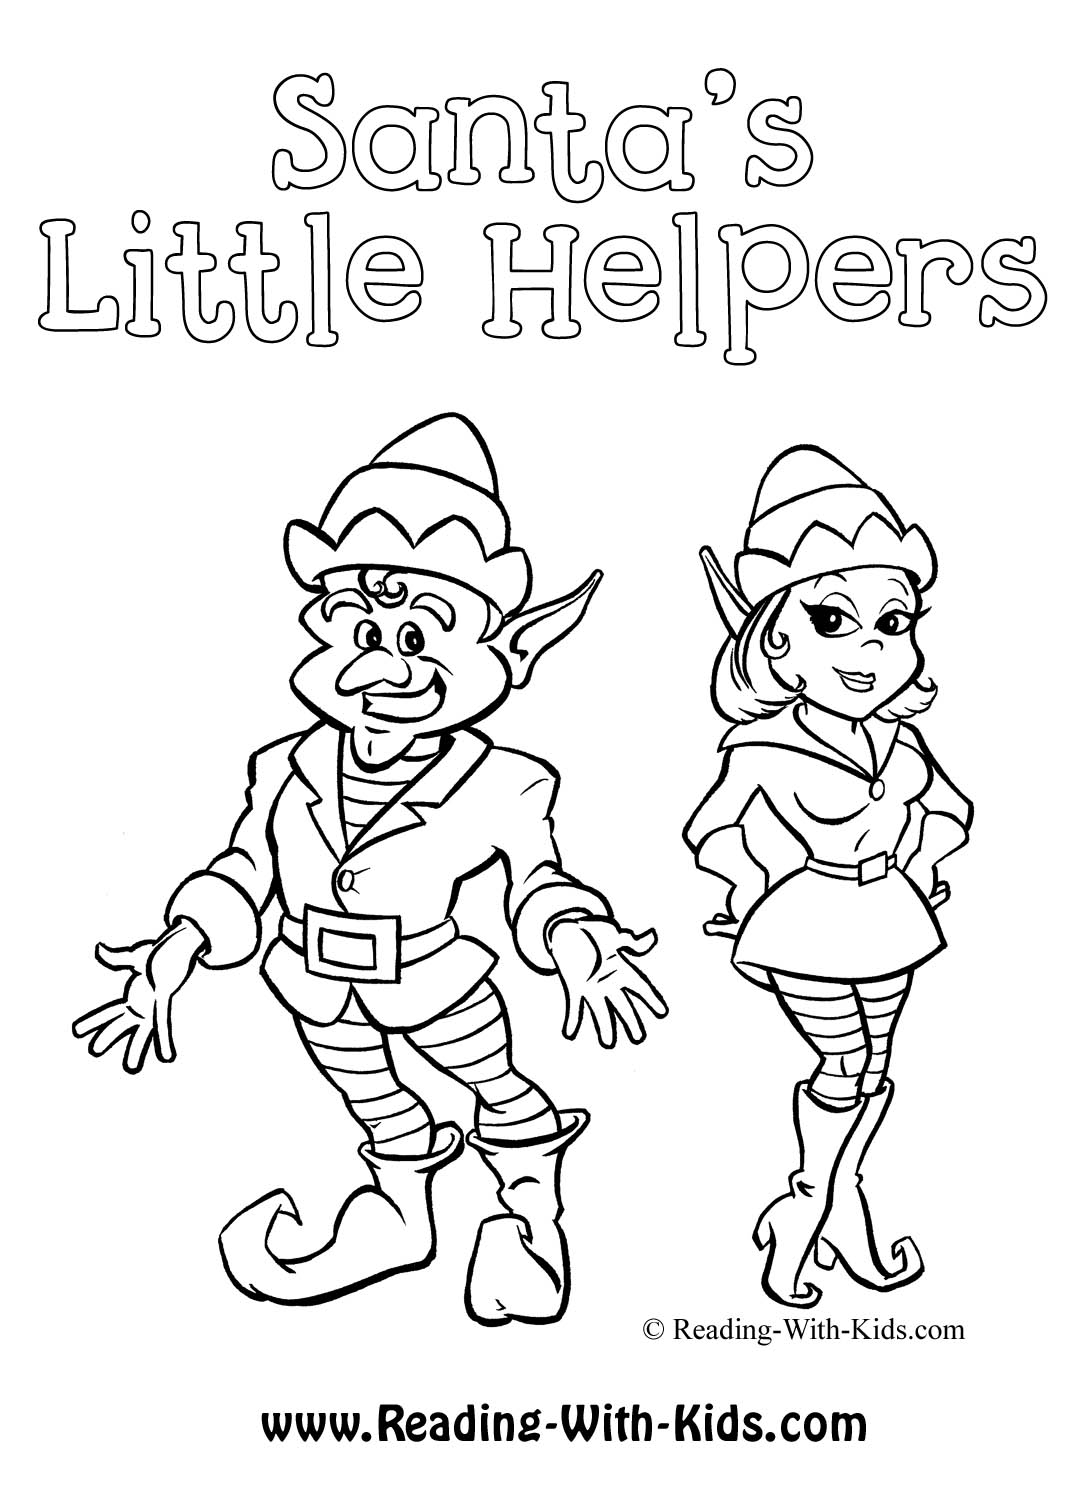 Free Printable Christmas Elf Coloring Pages With Download And On The